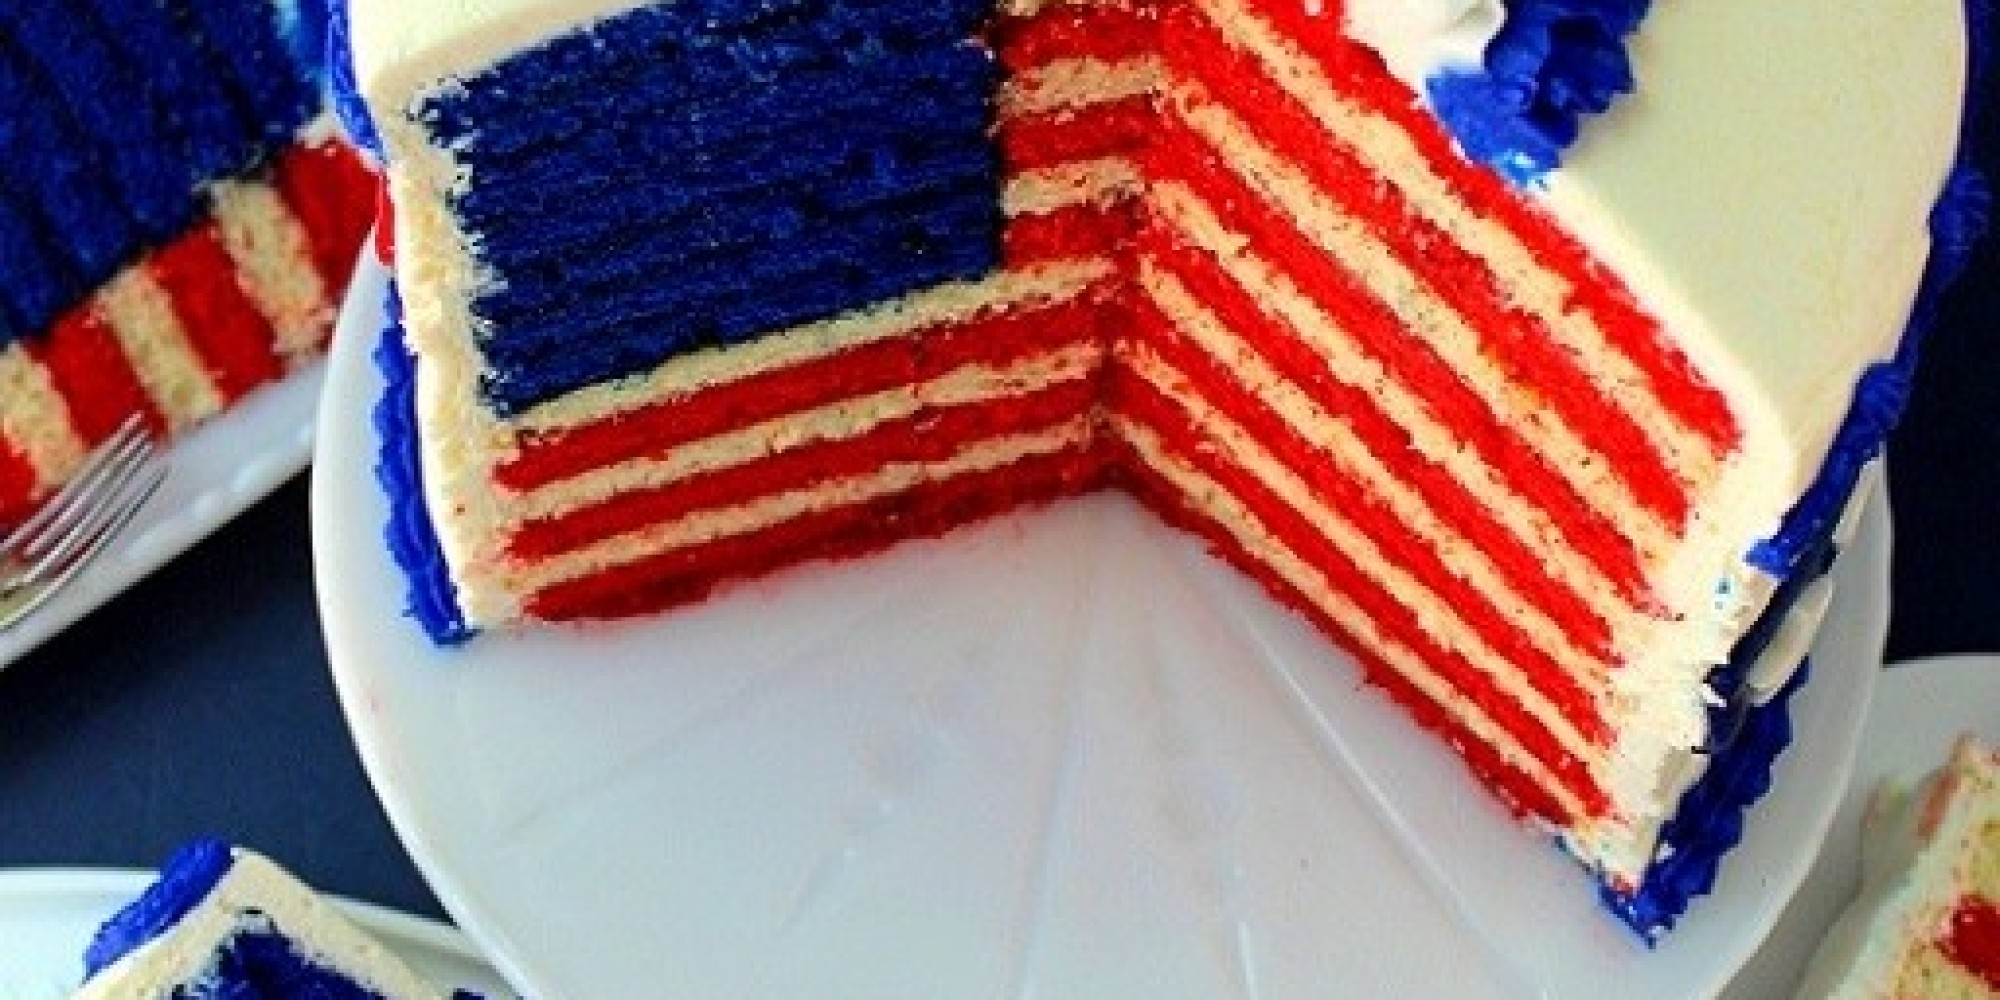 The Flag Cake Recipe To End All Flag Cakes | HuffPost